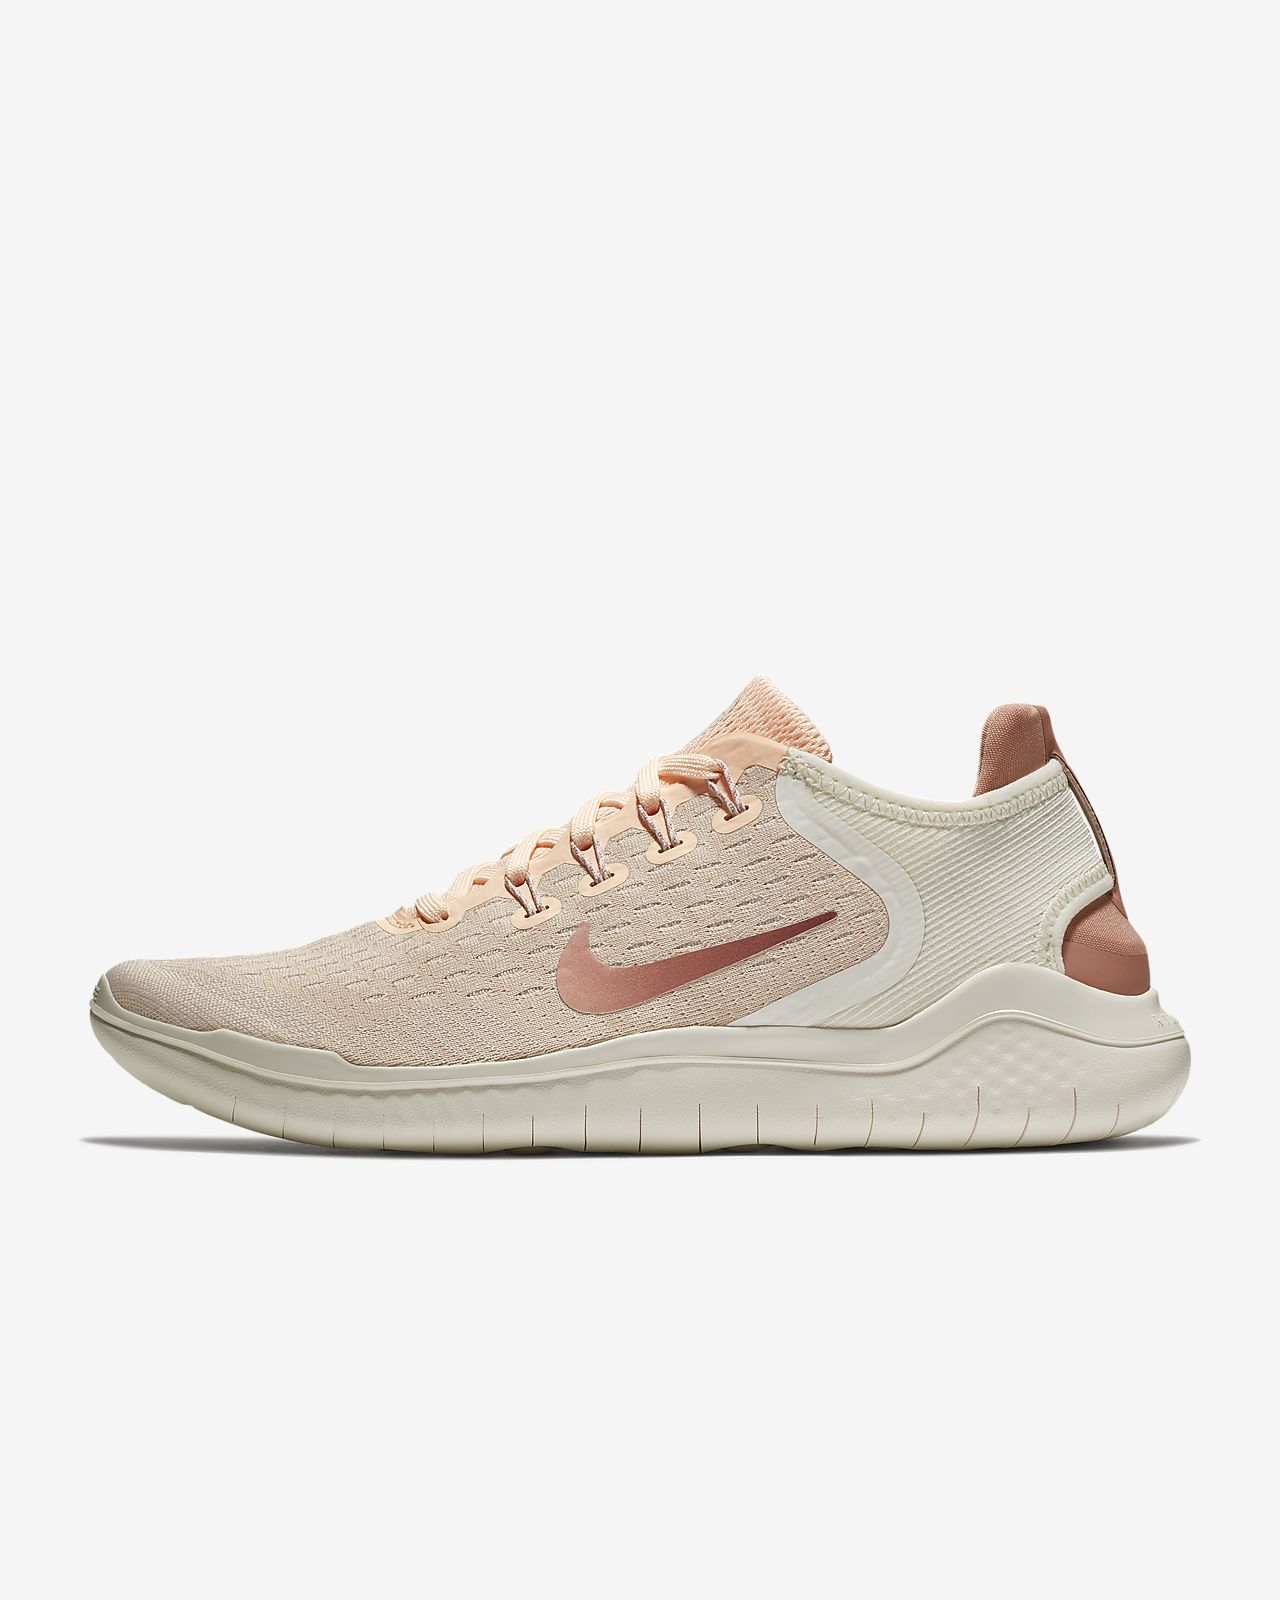 online store 3ee58 33ce2 Chaussure de running Nike Free RN 2018 pour Femme ...